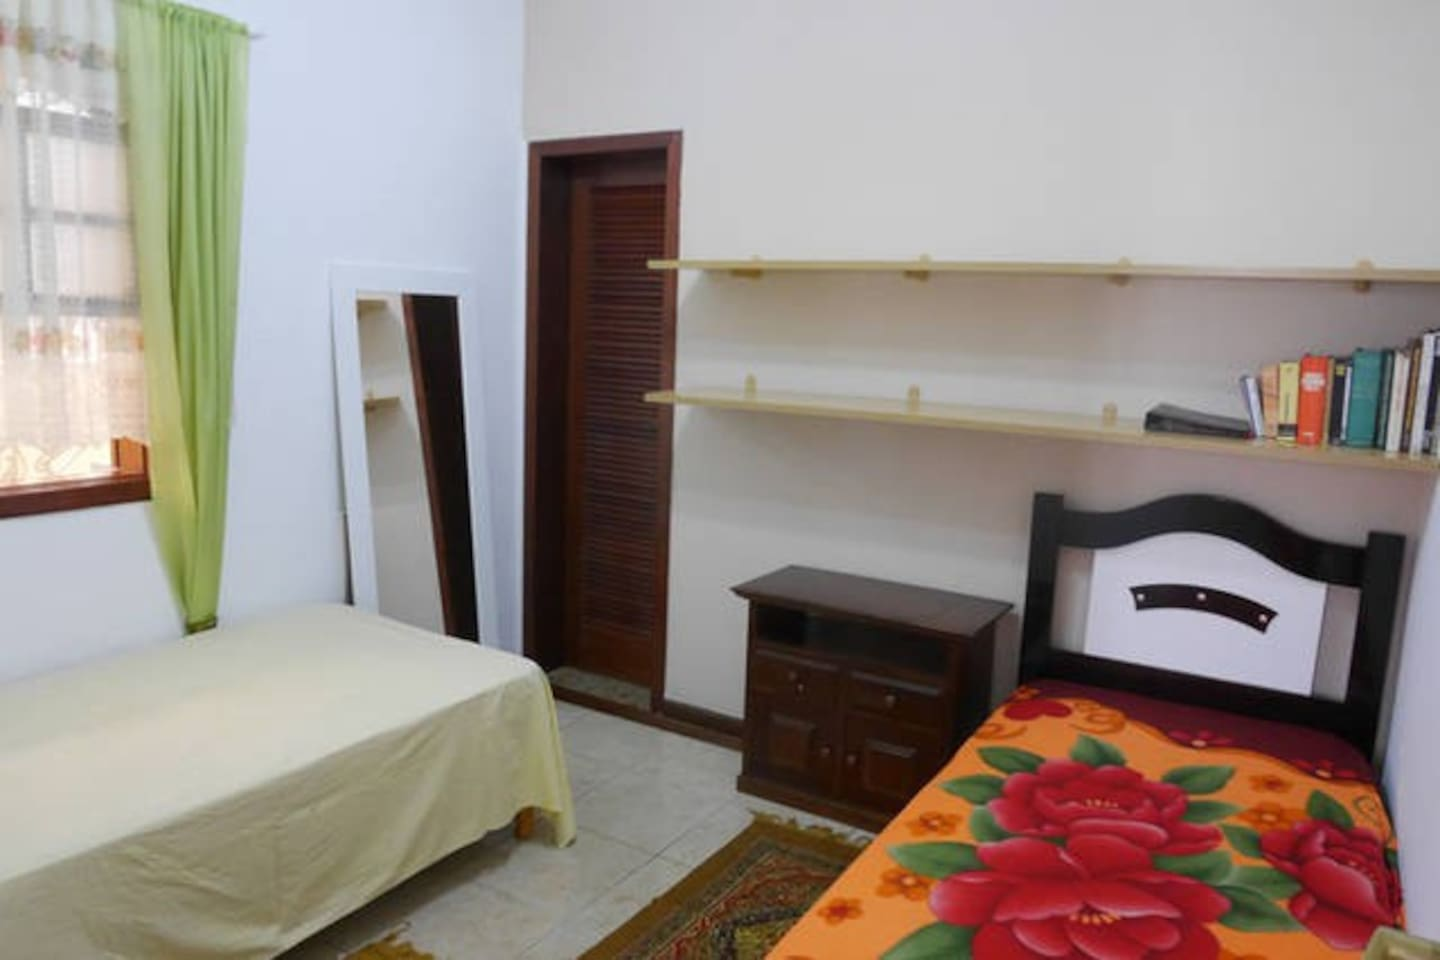 Zimmer mit zwei Betten / room with two beds.